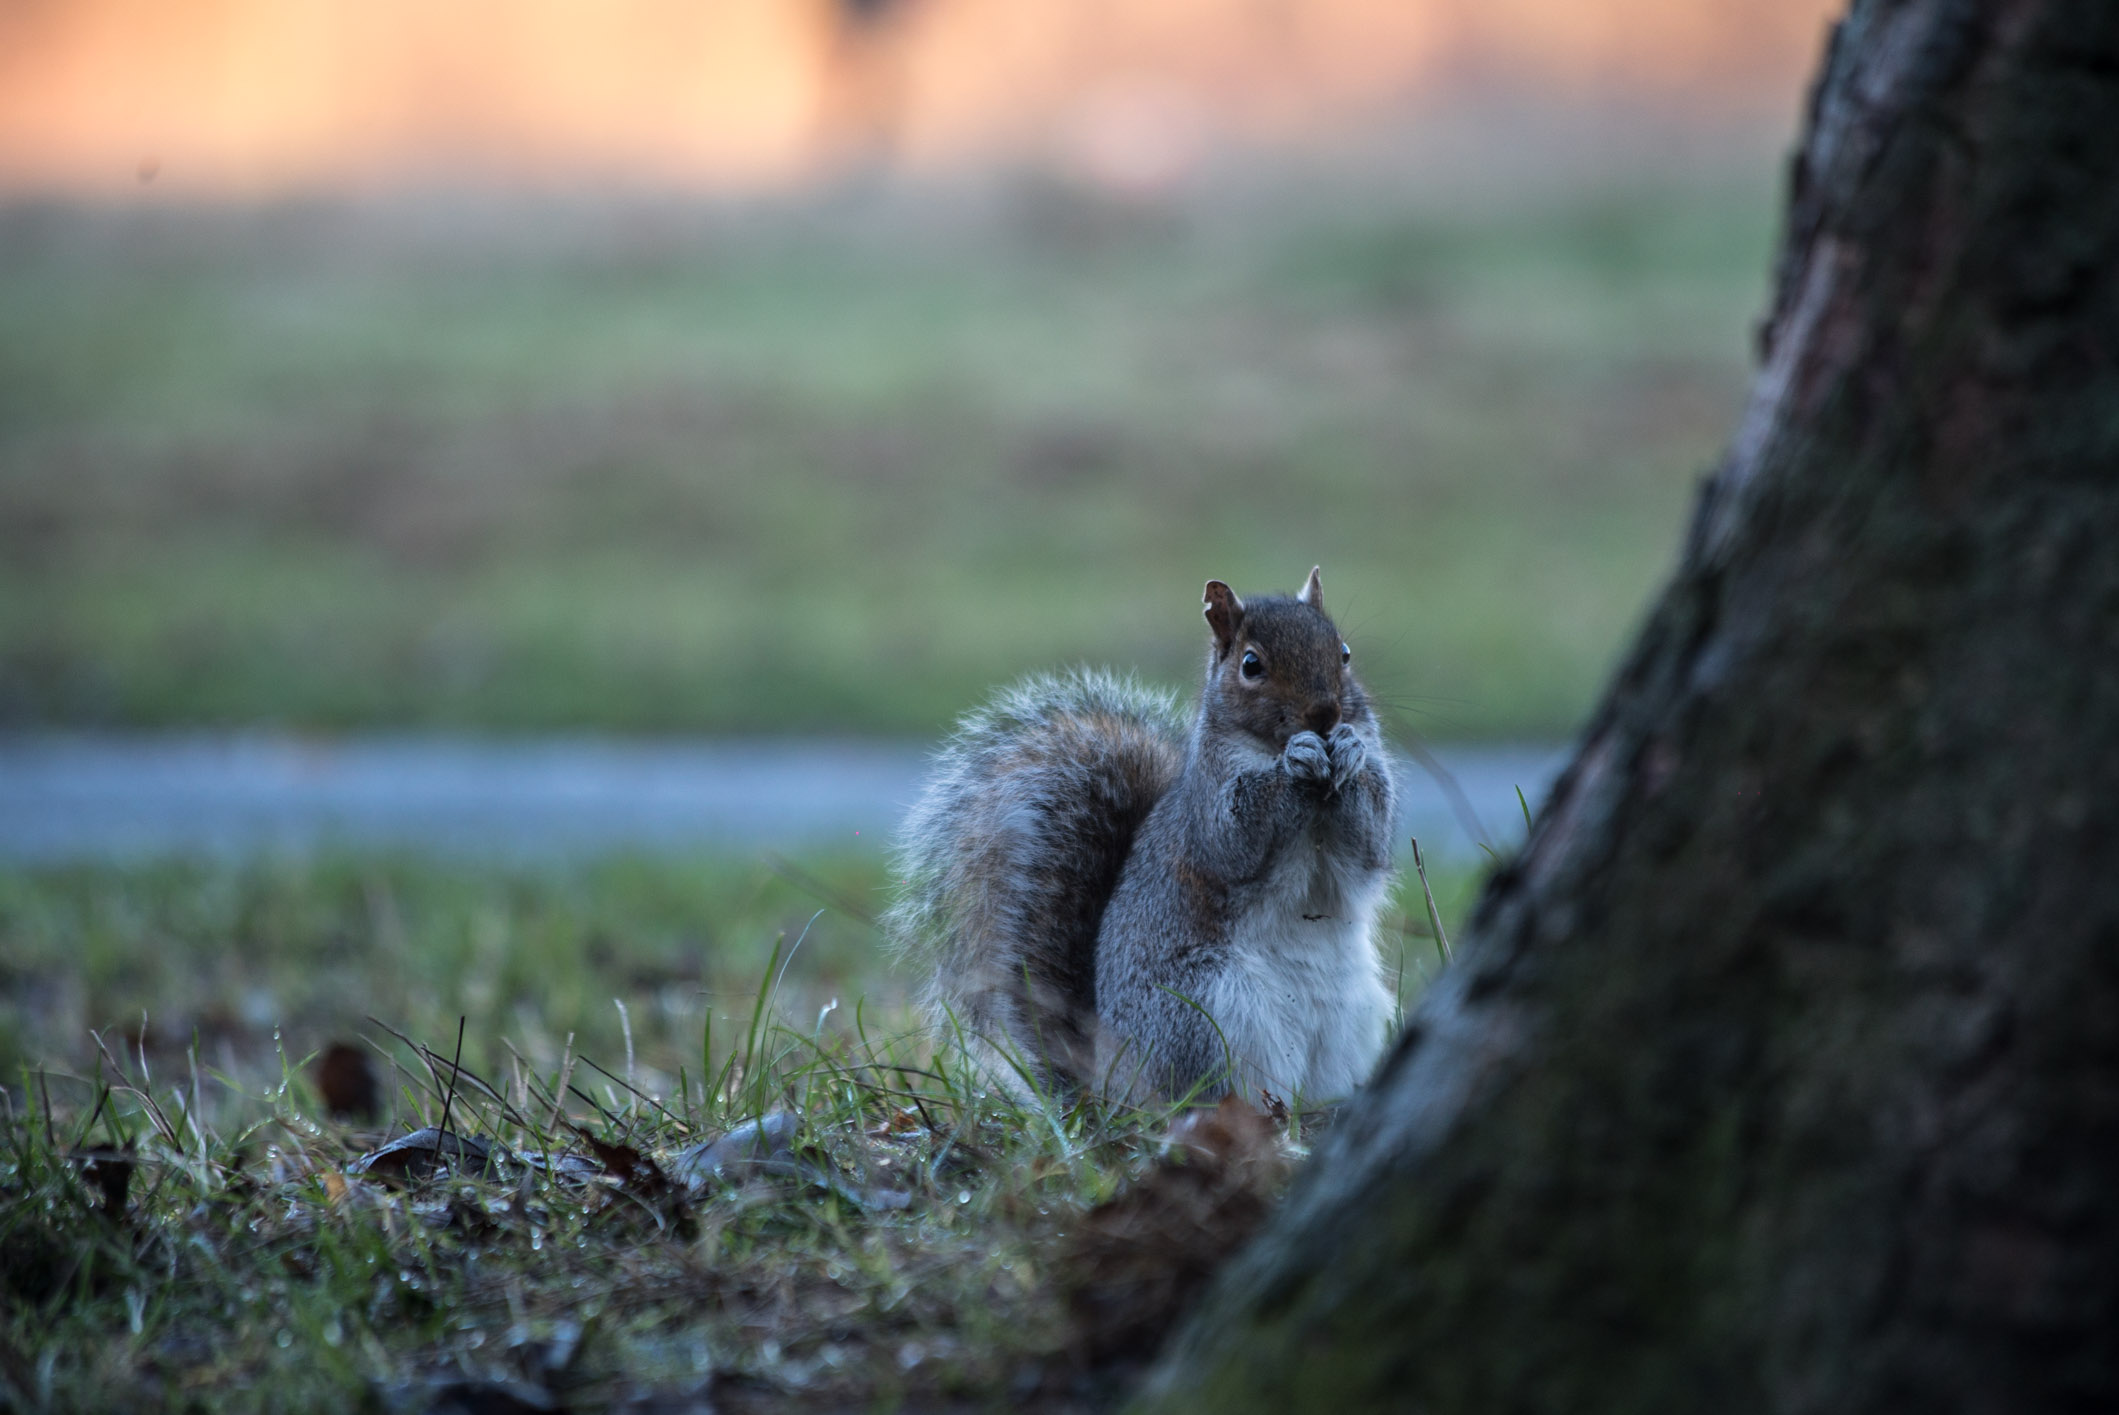 Photo by Pascal Sommer - A squirrel in Greenwich park